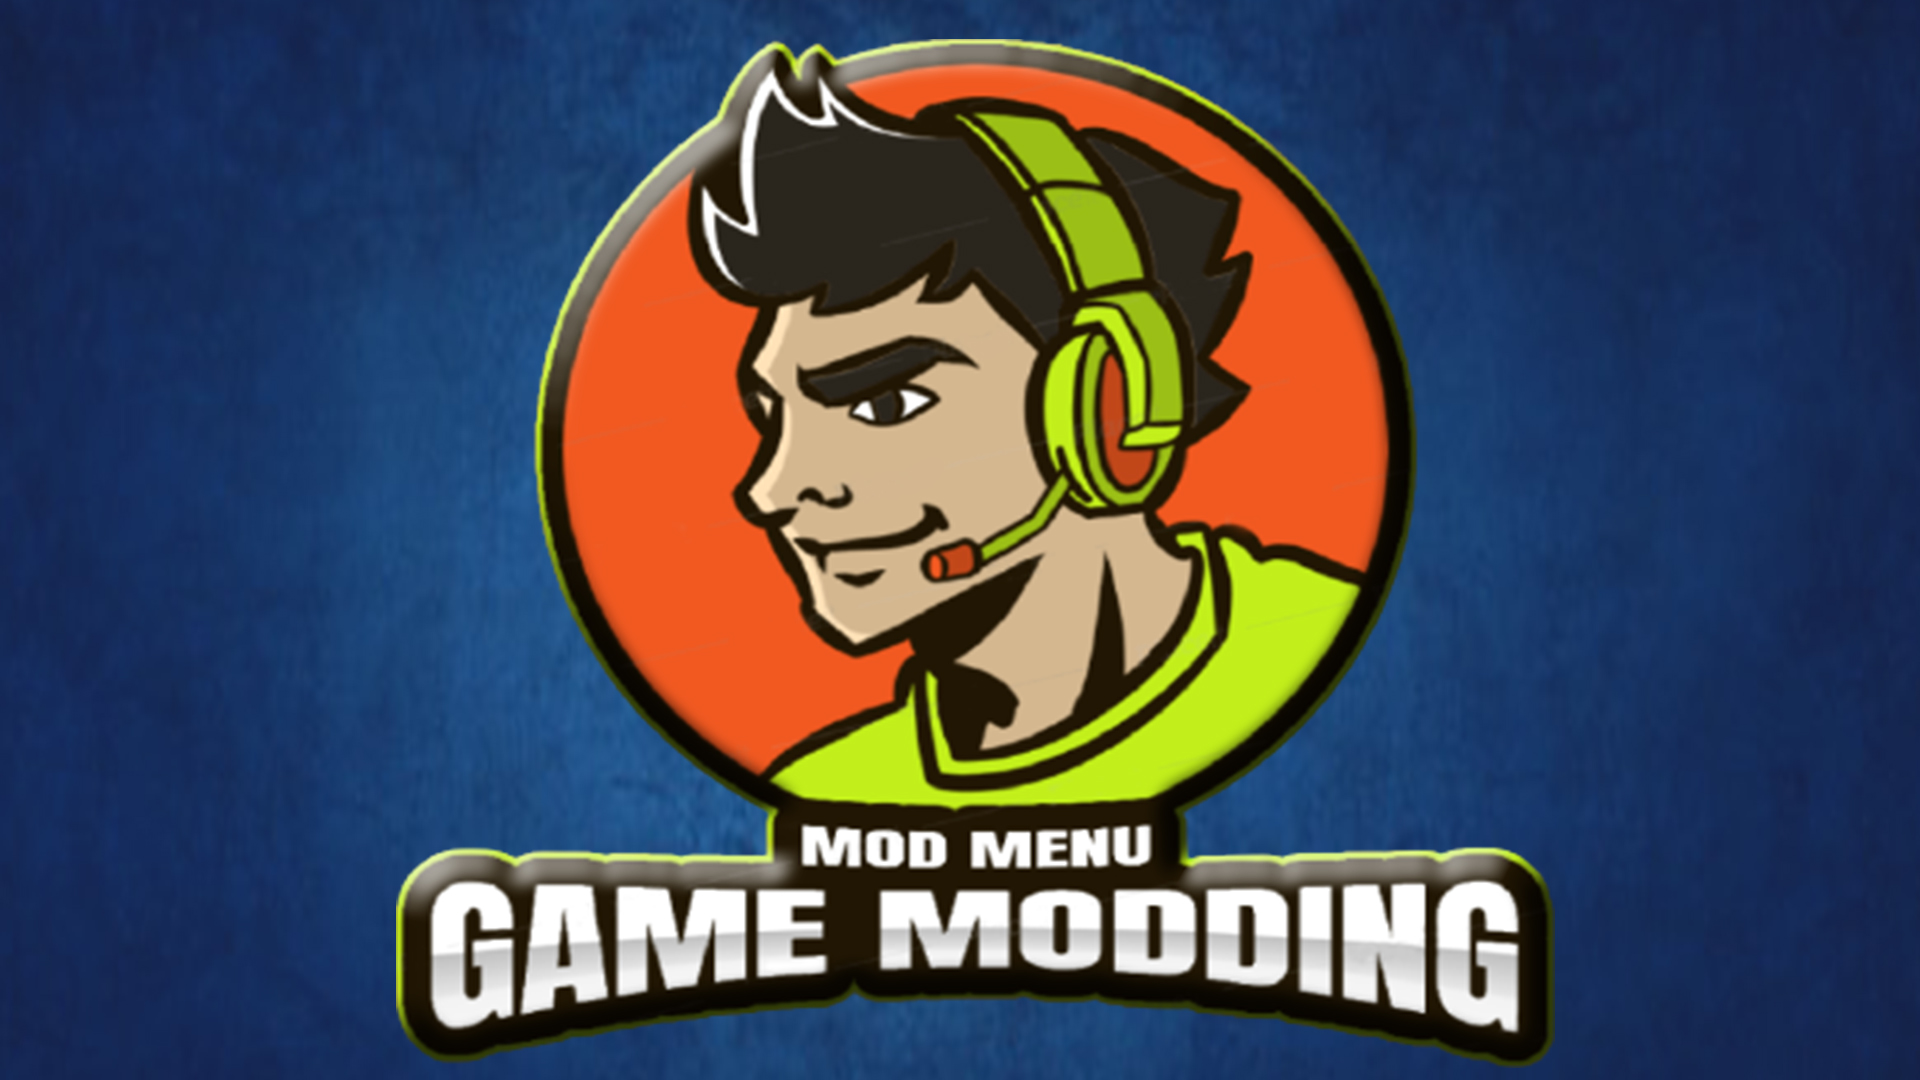 I will create a mod menu for any pc game